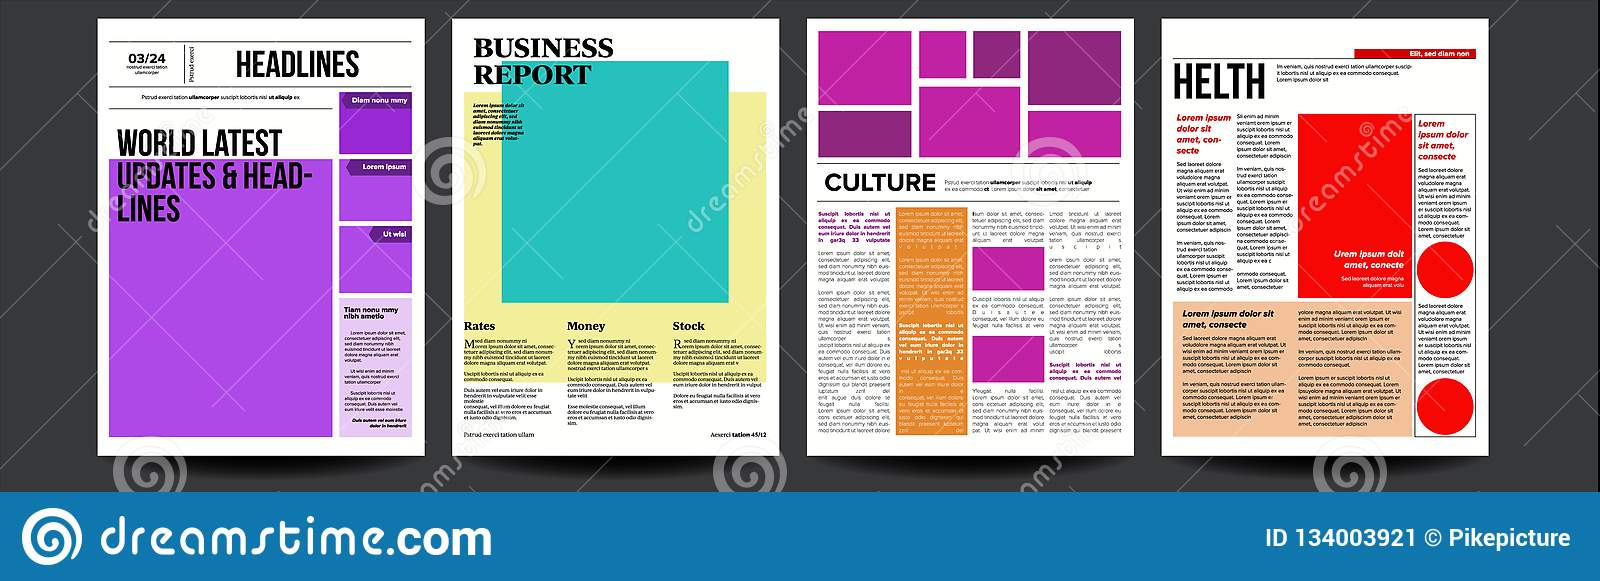 Newspaper Vector  With Headline, Images, News Page Articles